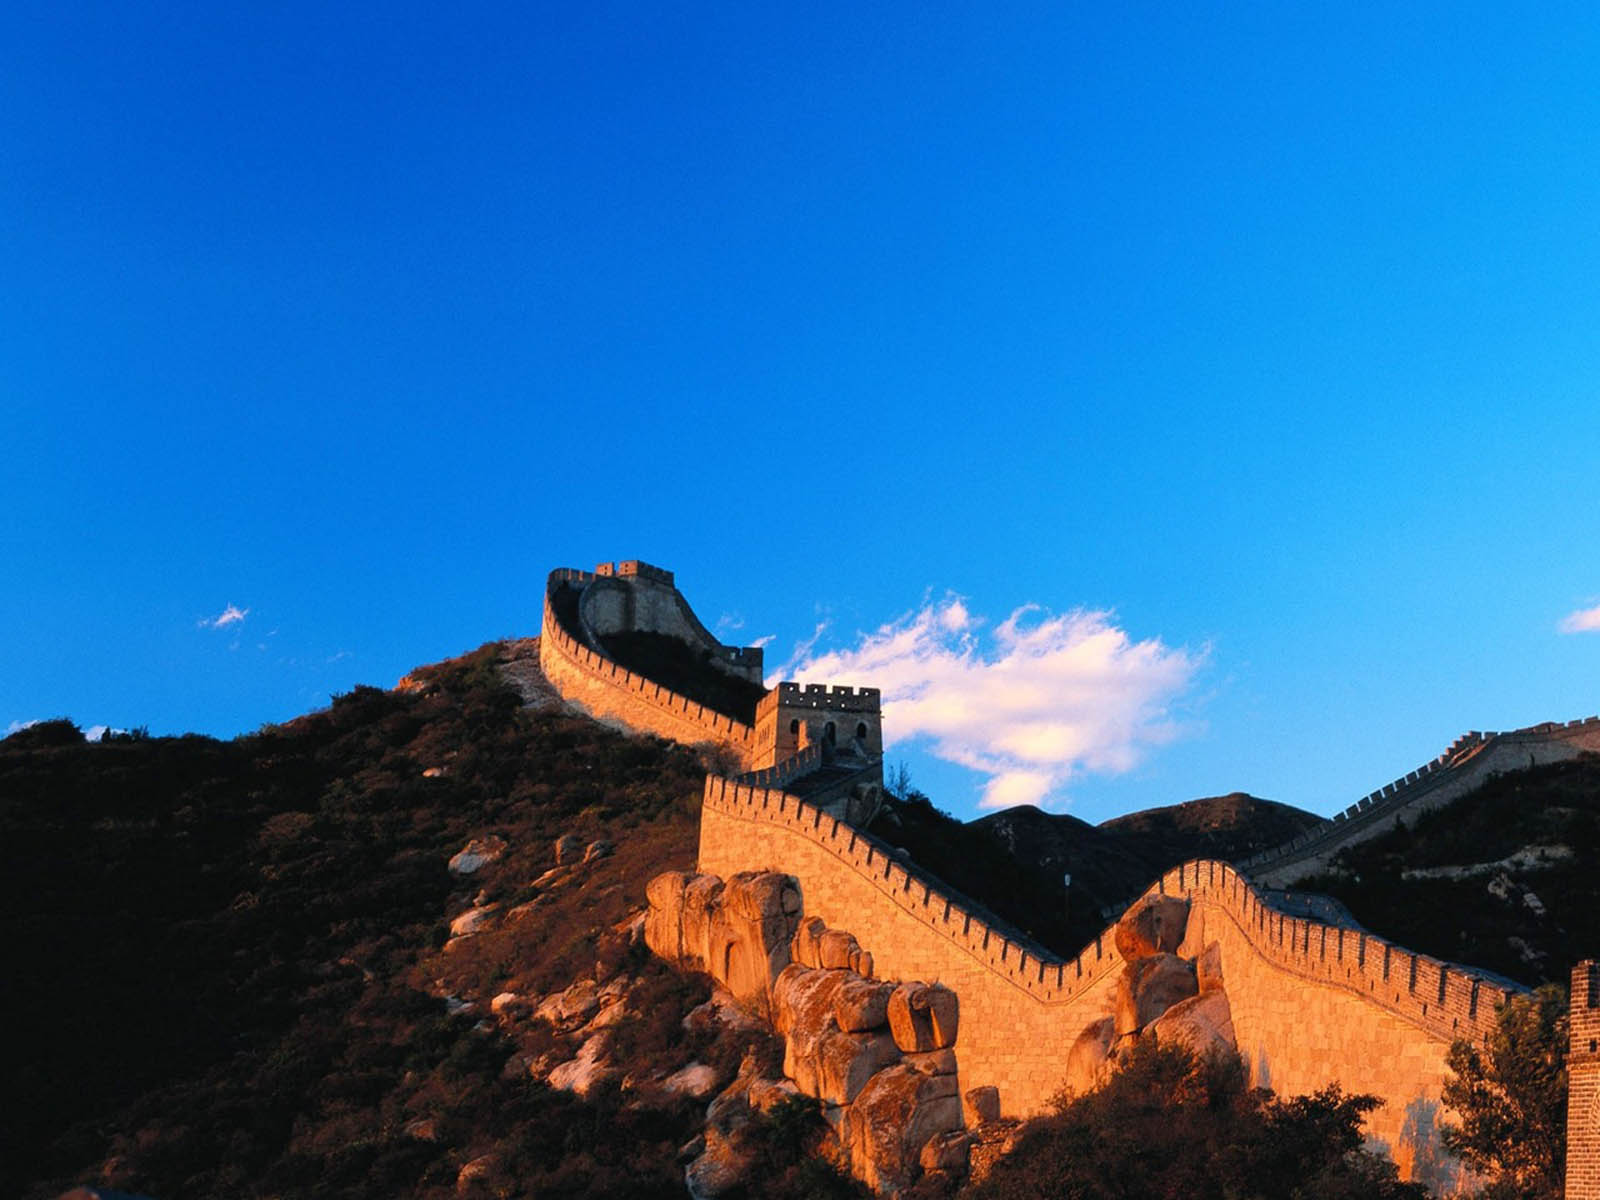 Wallpapers Great Wall Of China Wallpapers: 1 wall wallpaper